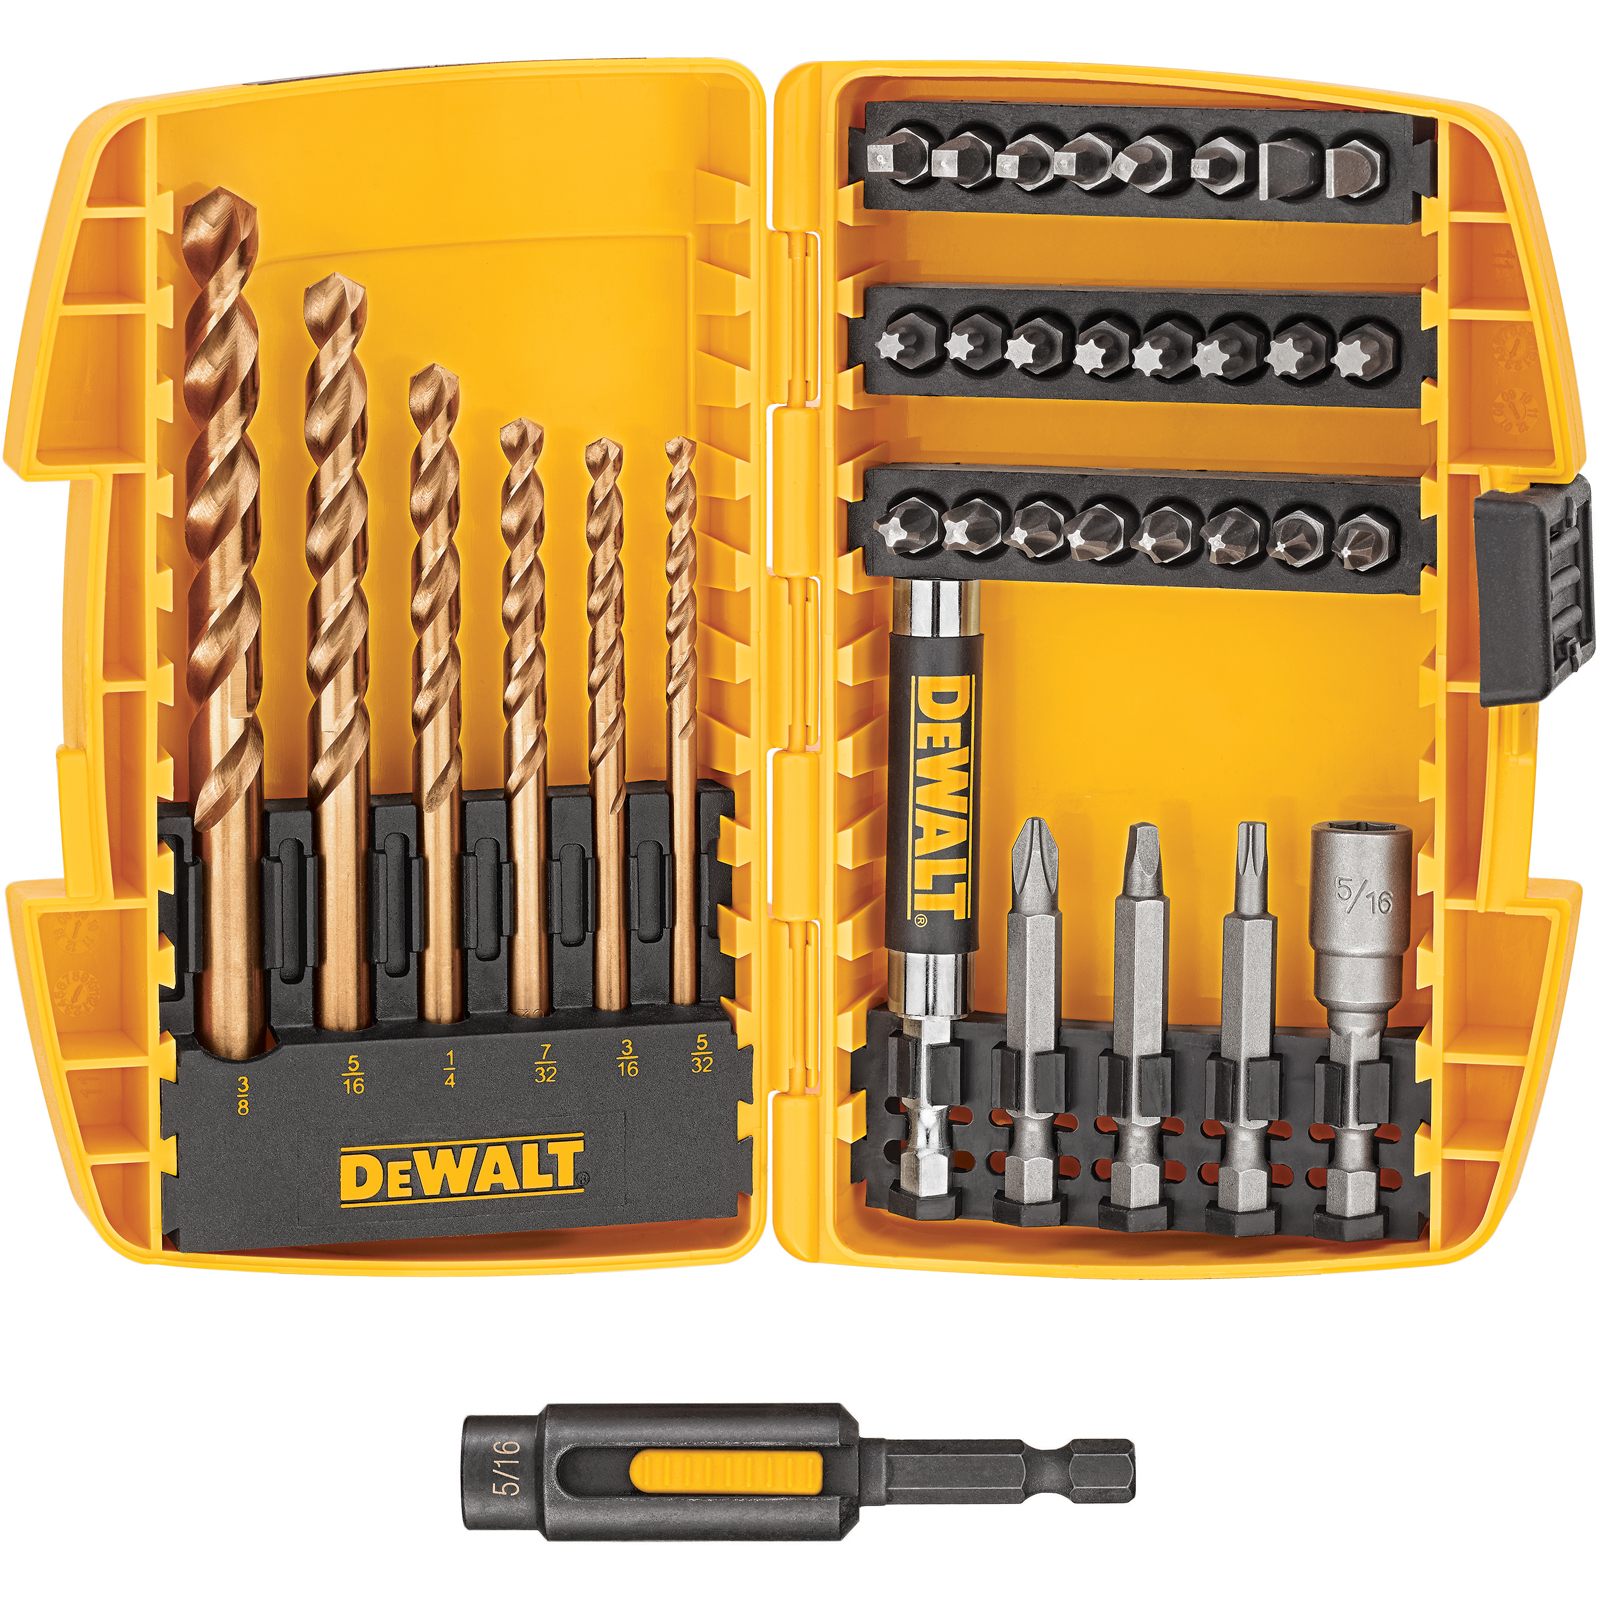 Drill Driver Set Dewalt 36 Piece Drill Driver Set Shop Your Way Online